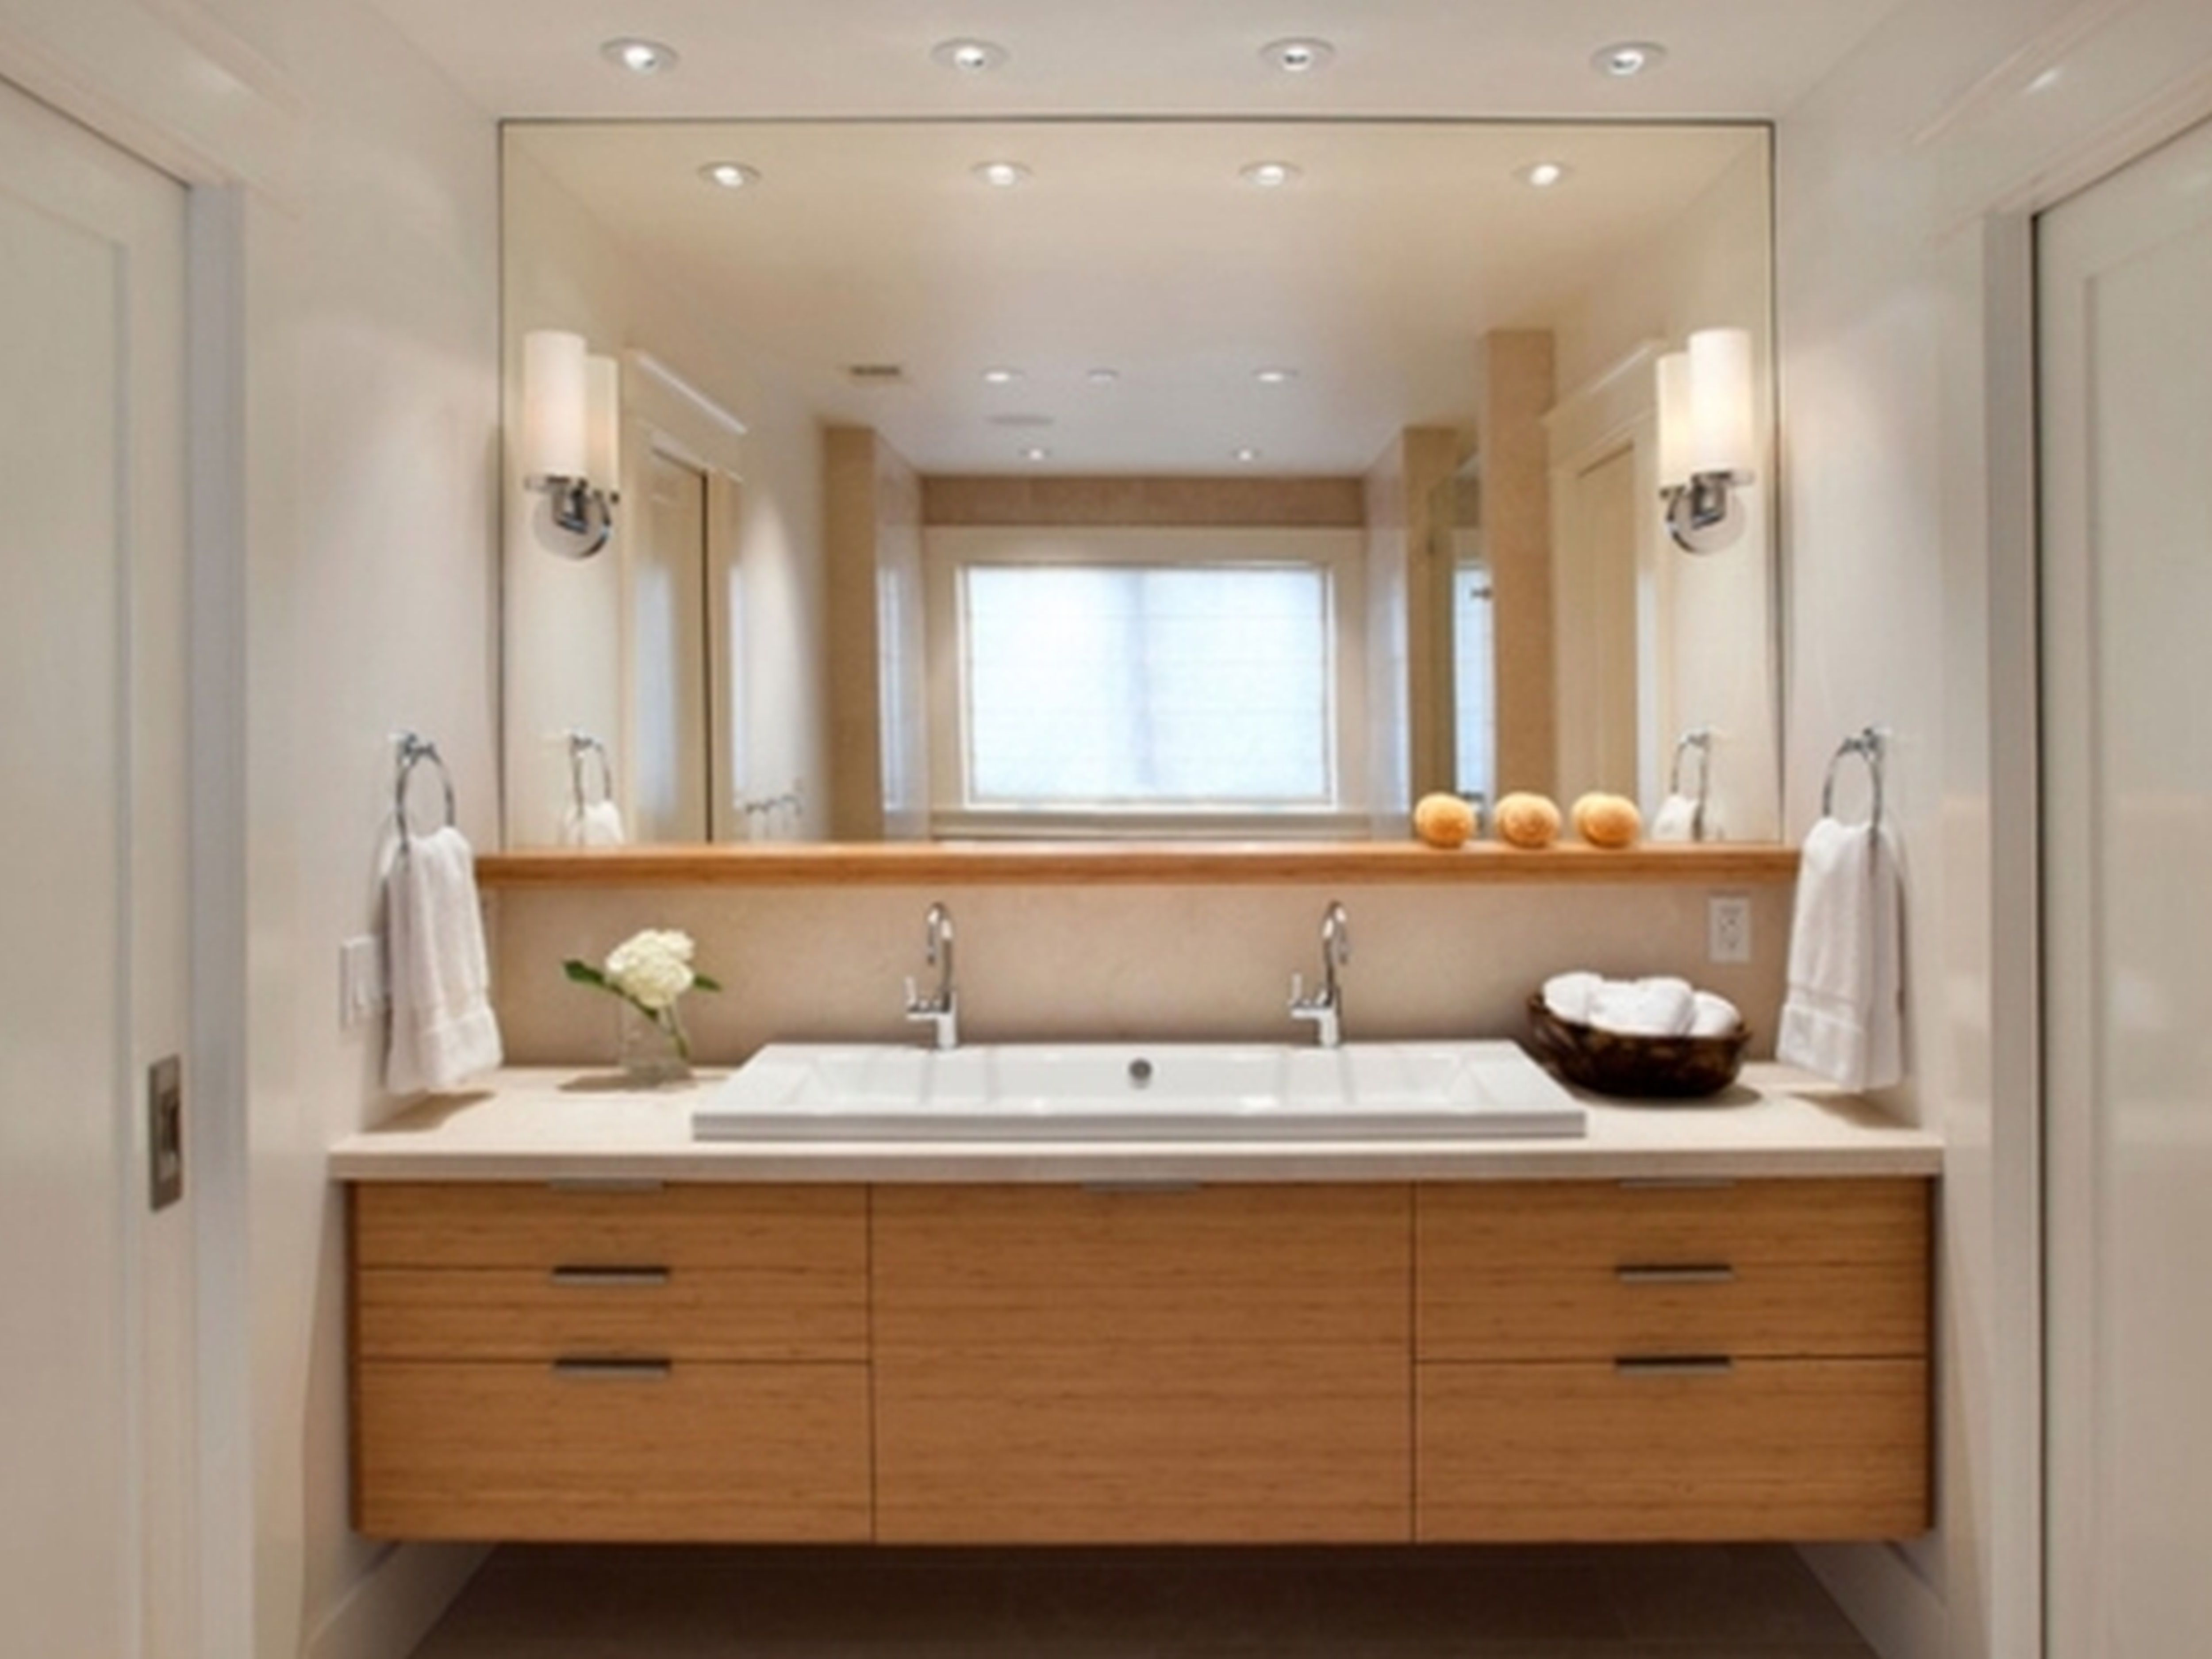 Small Bathroom With Shower Designs For Tiny Vanity Ideas Diy And Awesome Designer Bathroom Cabinet Inspiration Design